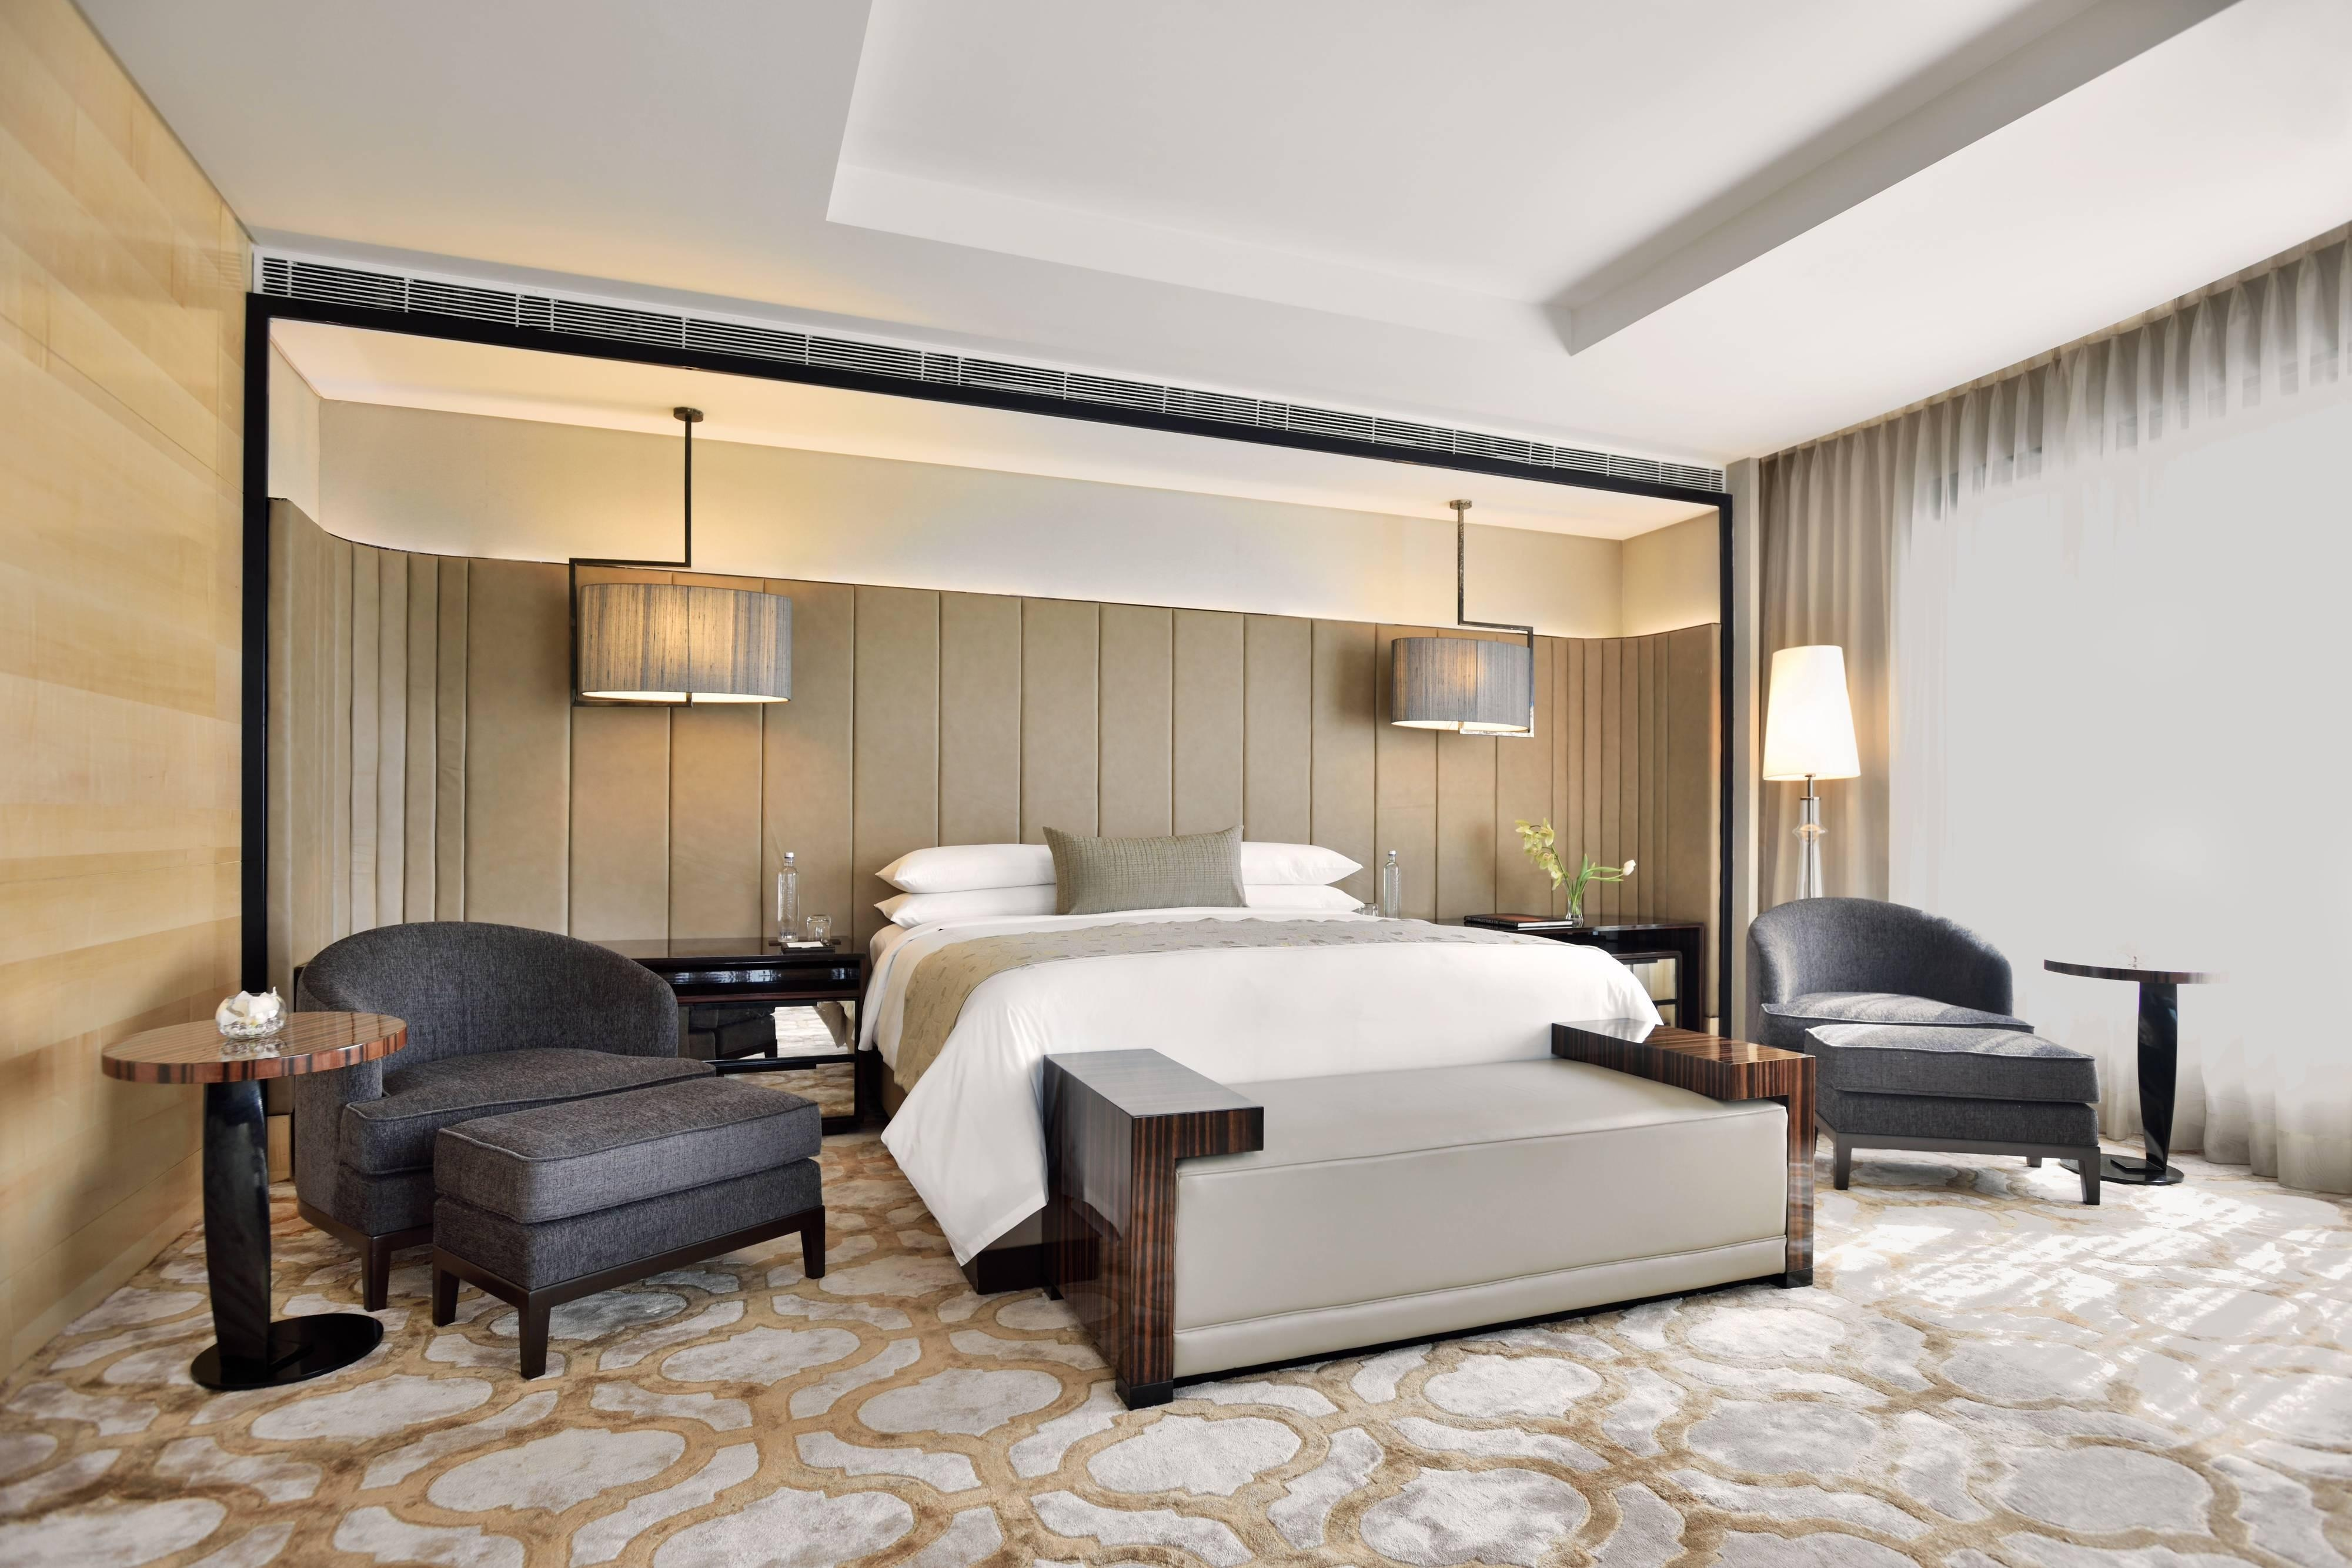 Presidential Suite at JW Marriott New Delhi Aerocity